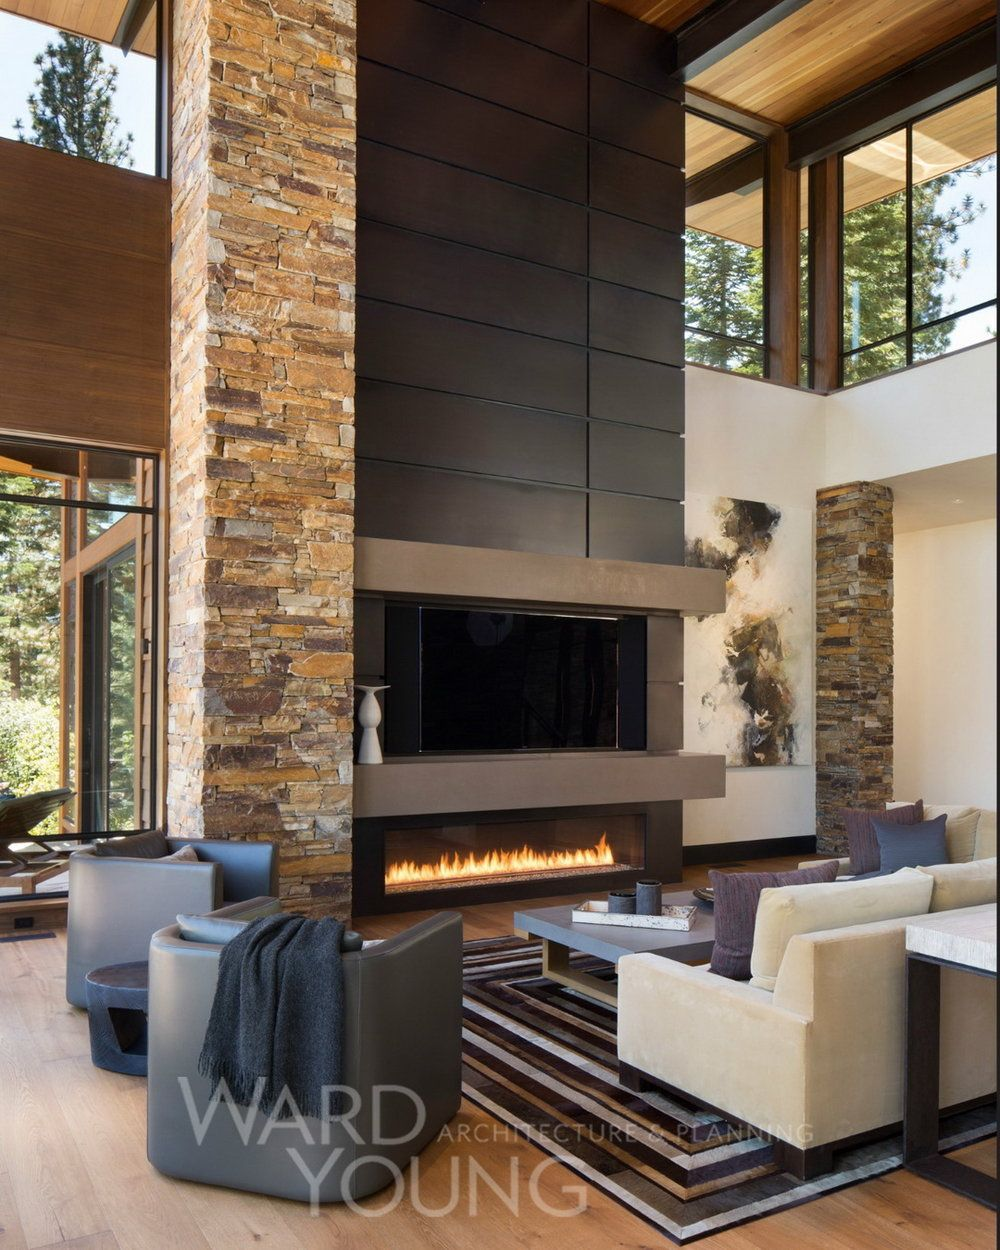 Montana Ranch House By Suyama Peterson Deguchi: Martis Modern Mountain Home By Ward Young Architecture